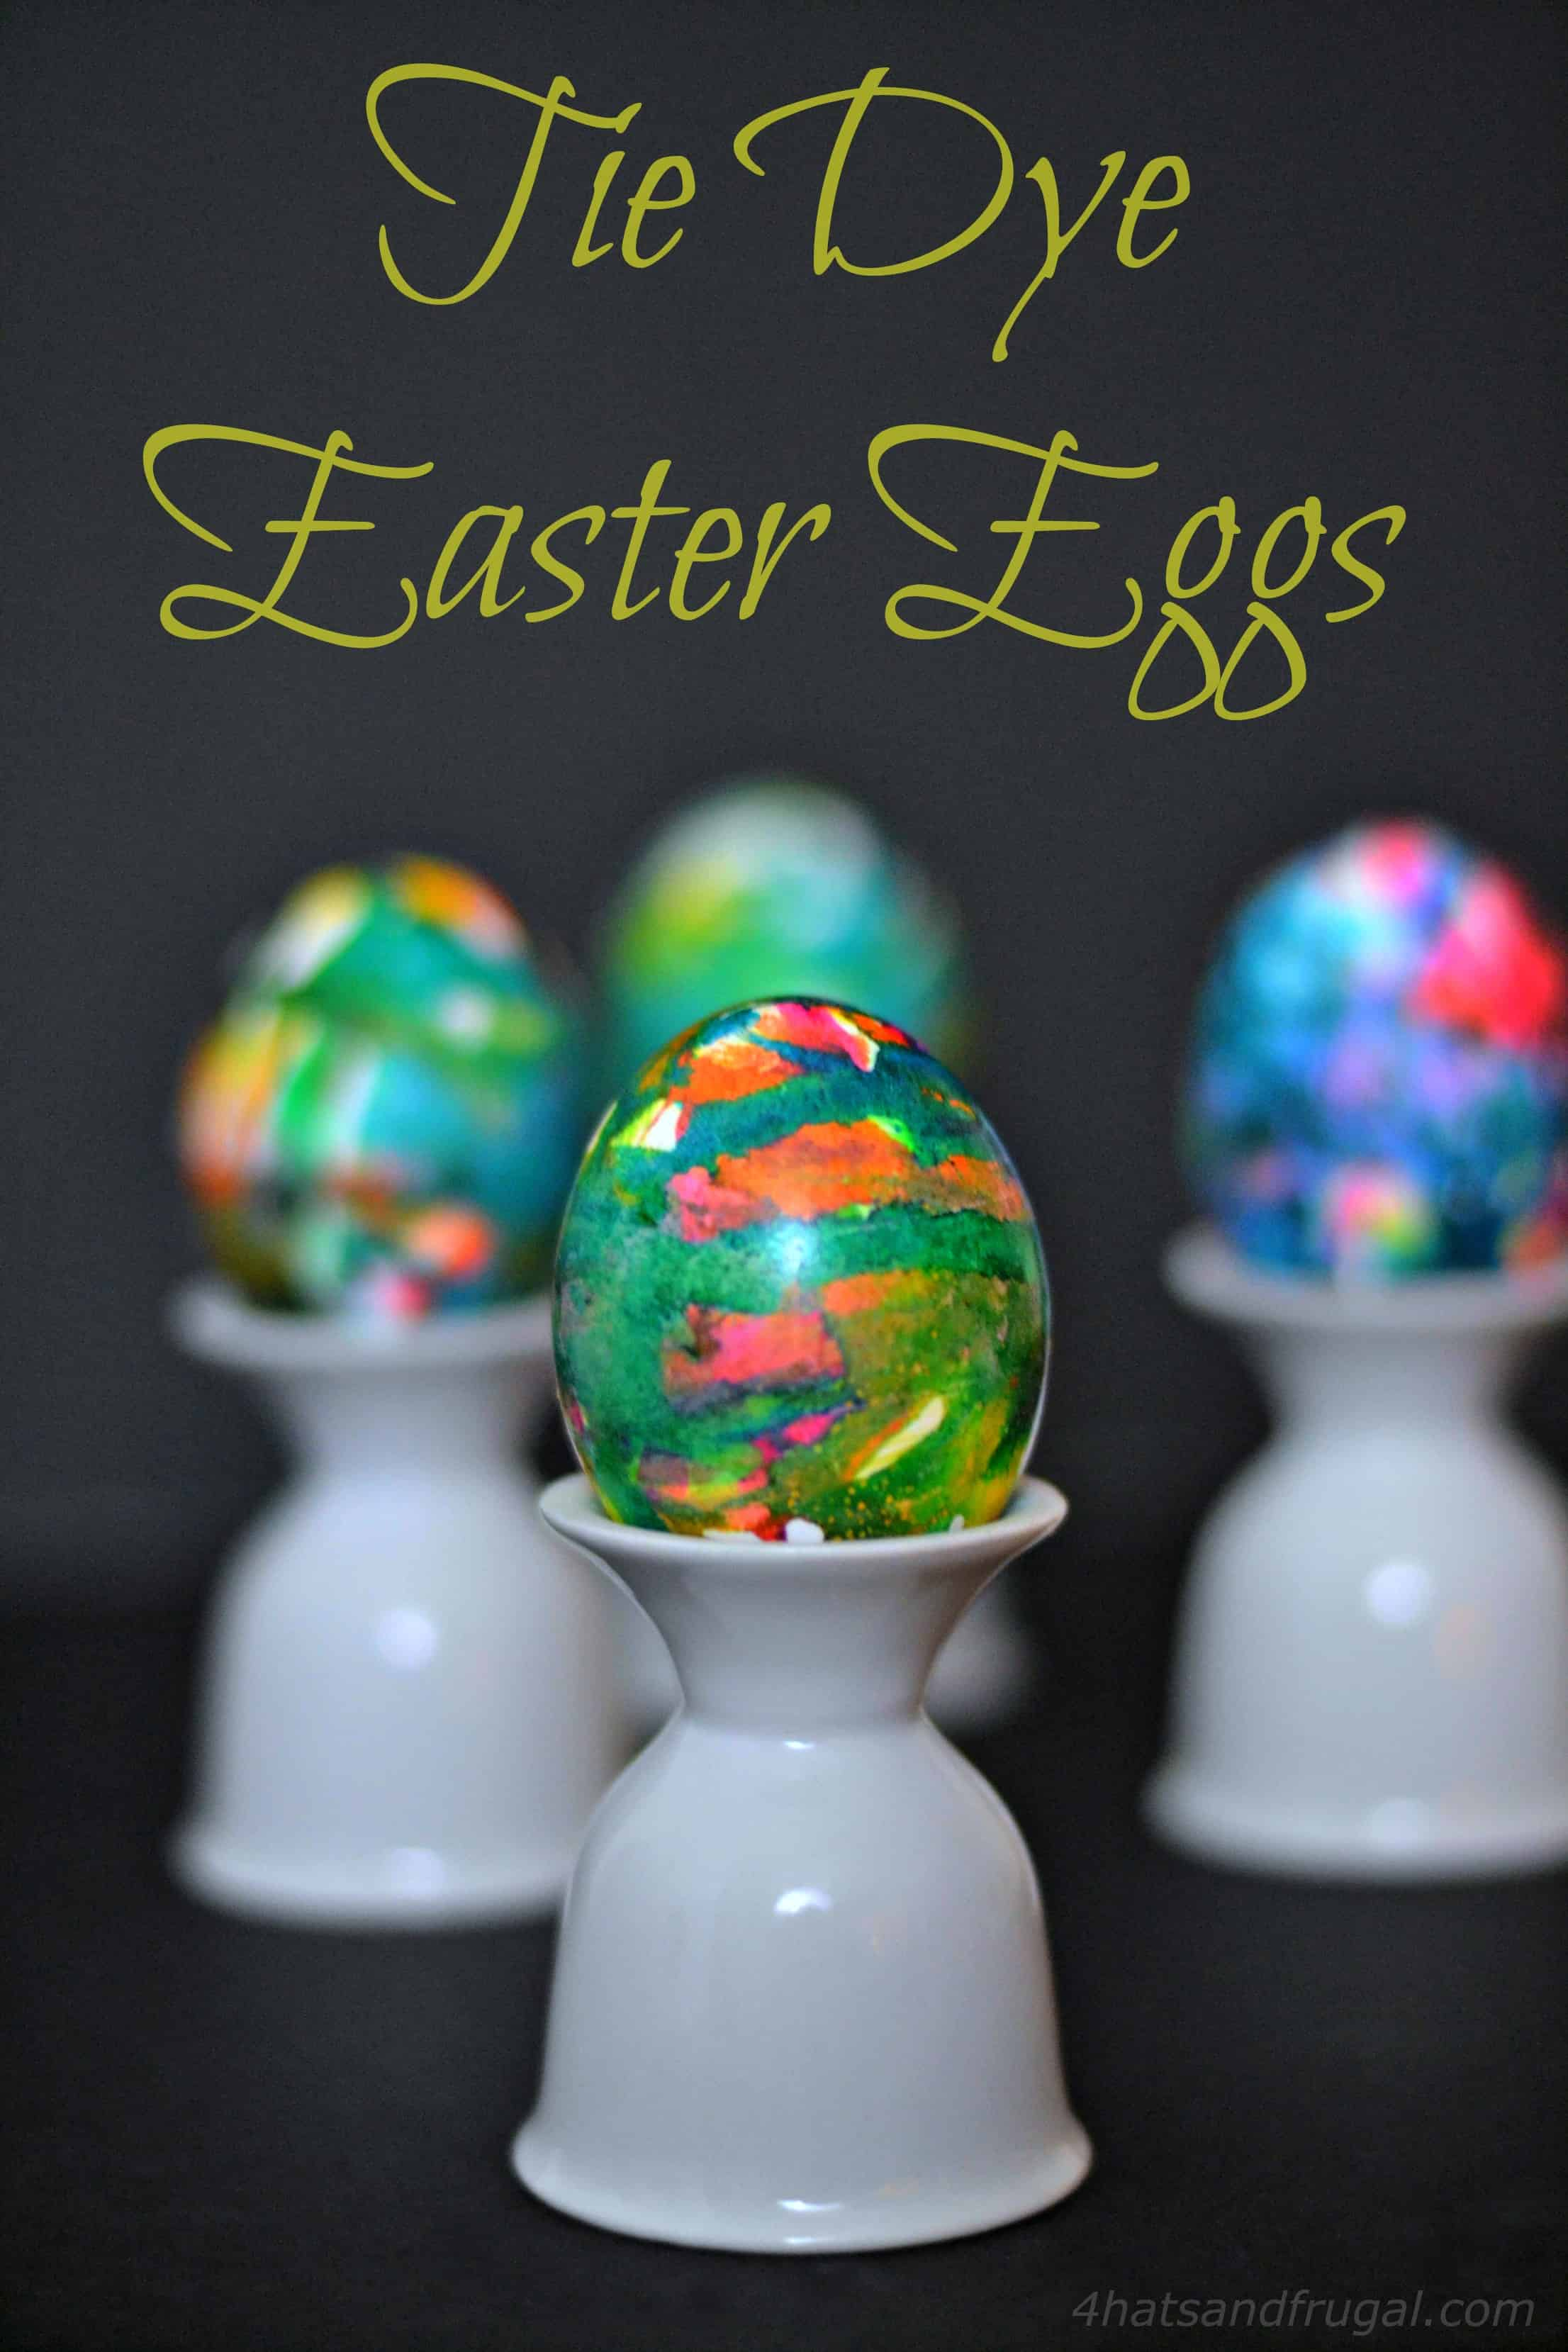 Looking for a fun, new way to dye your Easter eggs this year? These Tie Dye Easter Eggs are a great twist on the usual tradition.